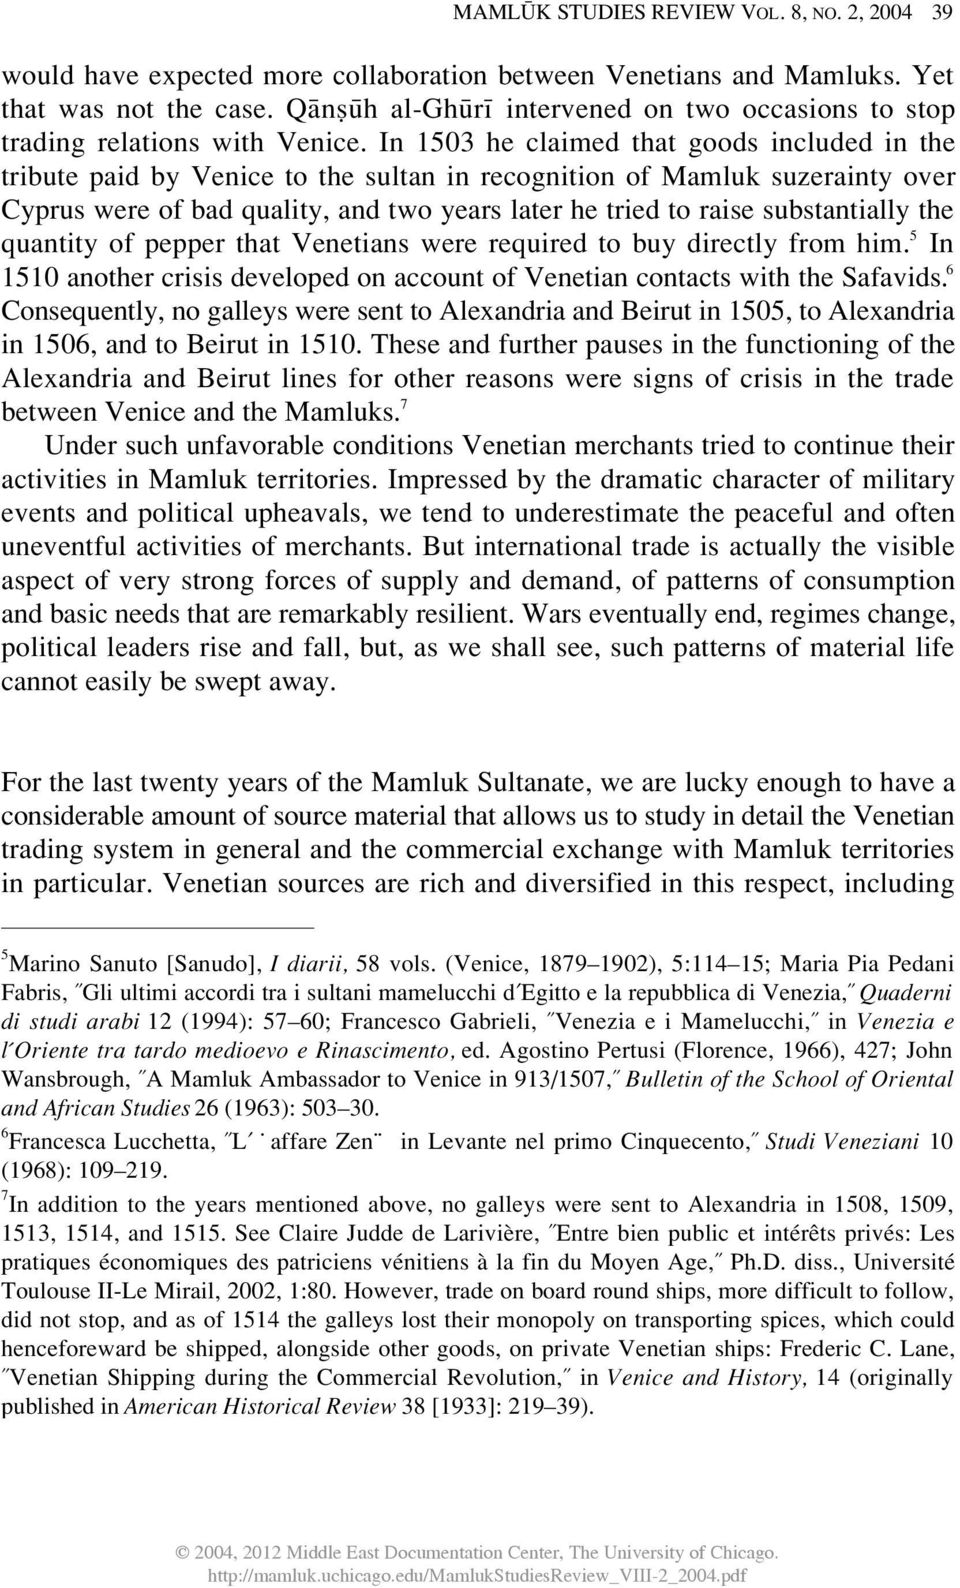 In 1503 he claimed that goods included in the tribute paid by Venice to the sultan in recognition of Mamluk suzerainty over Cyprus were of bad quality, and two years later he tried to raise